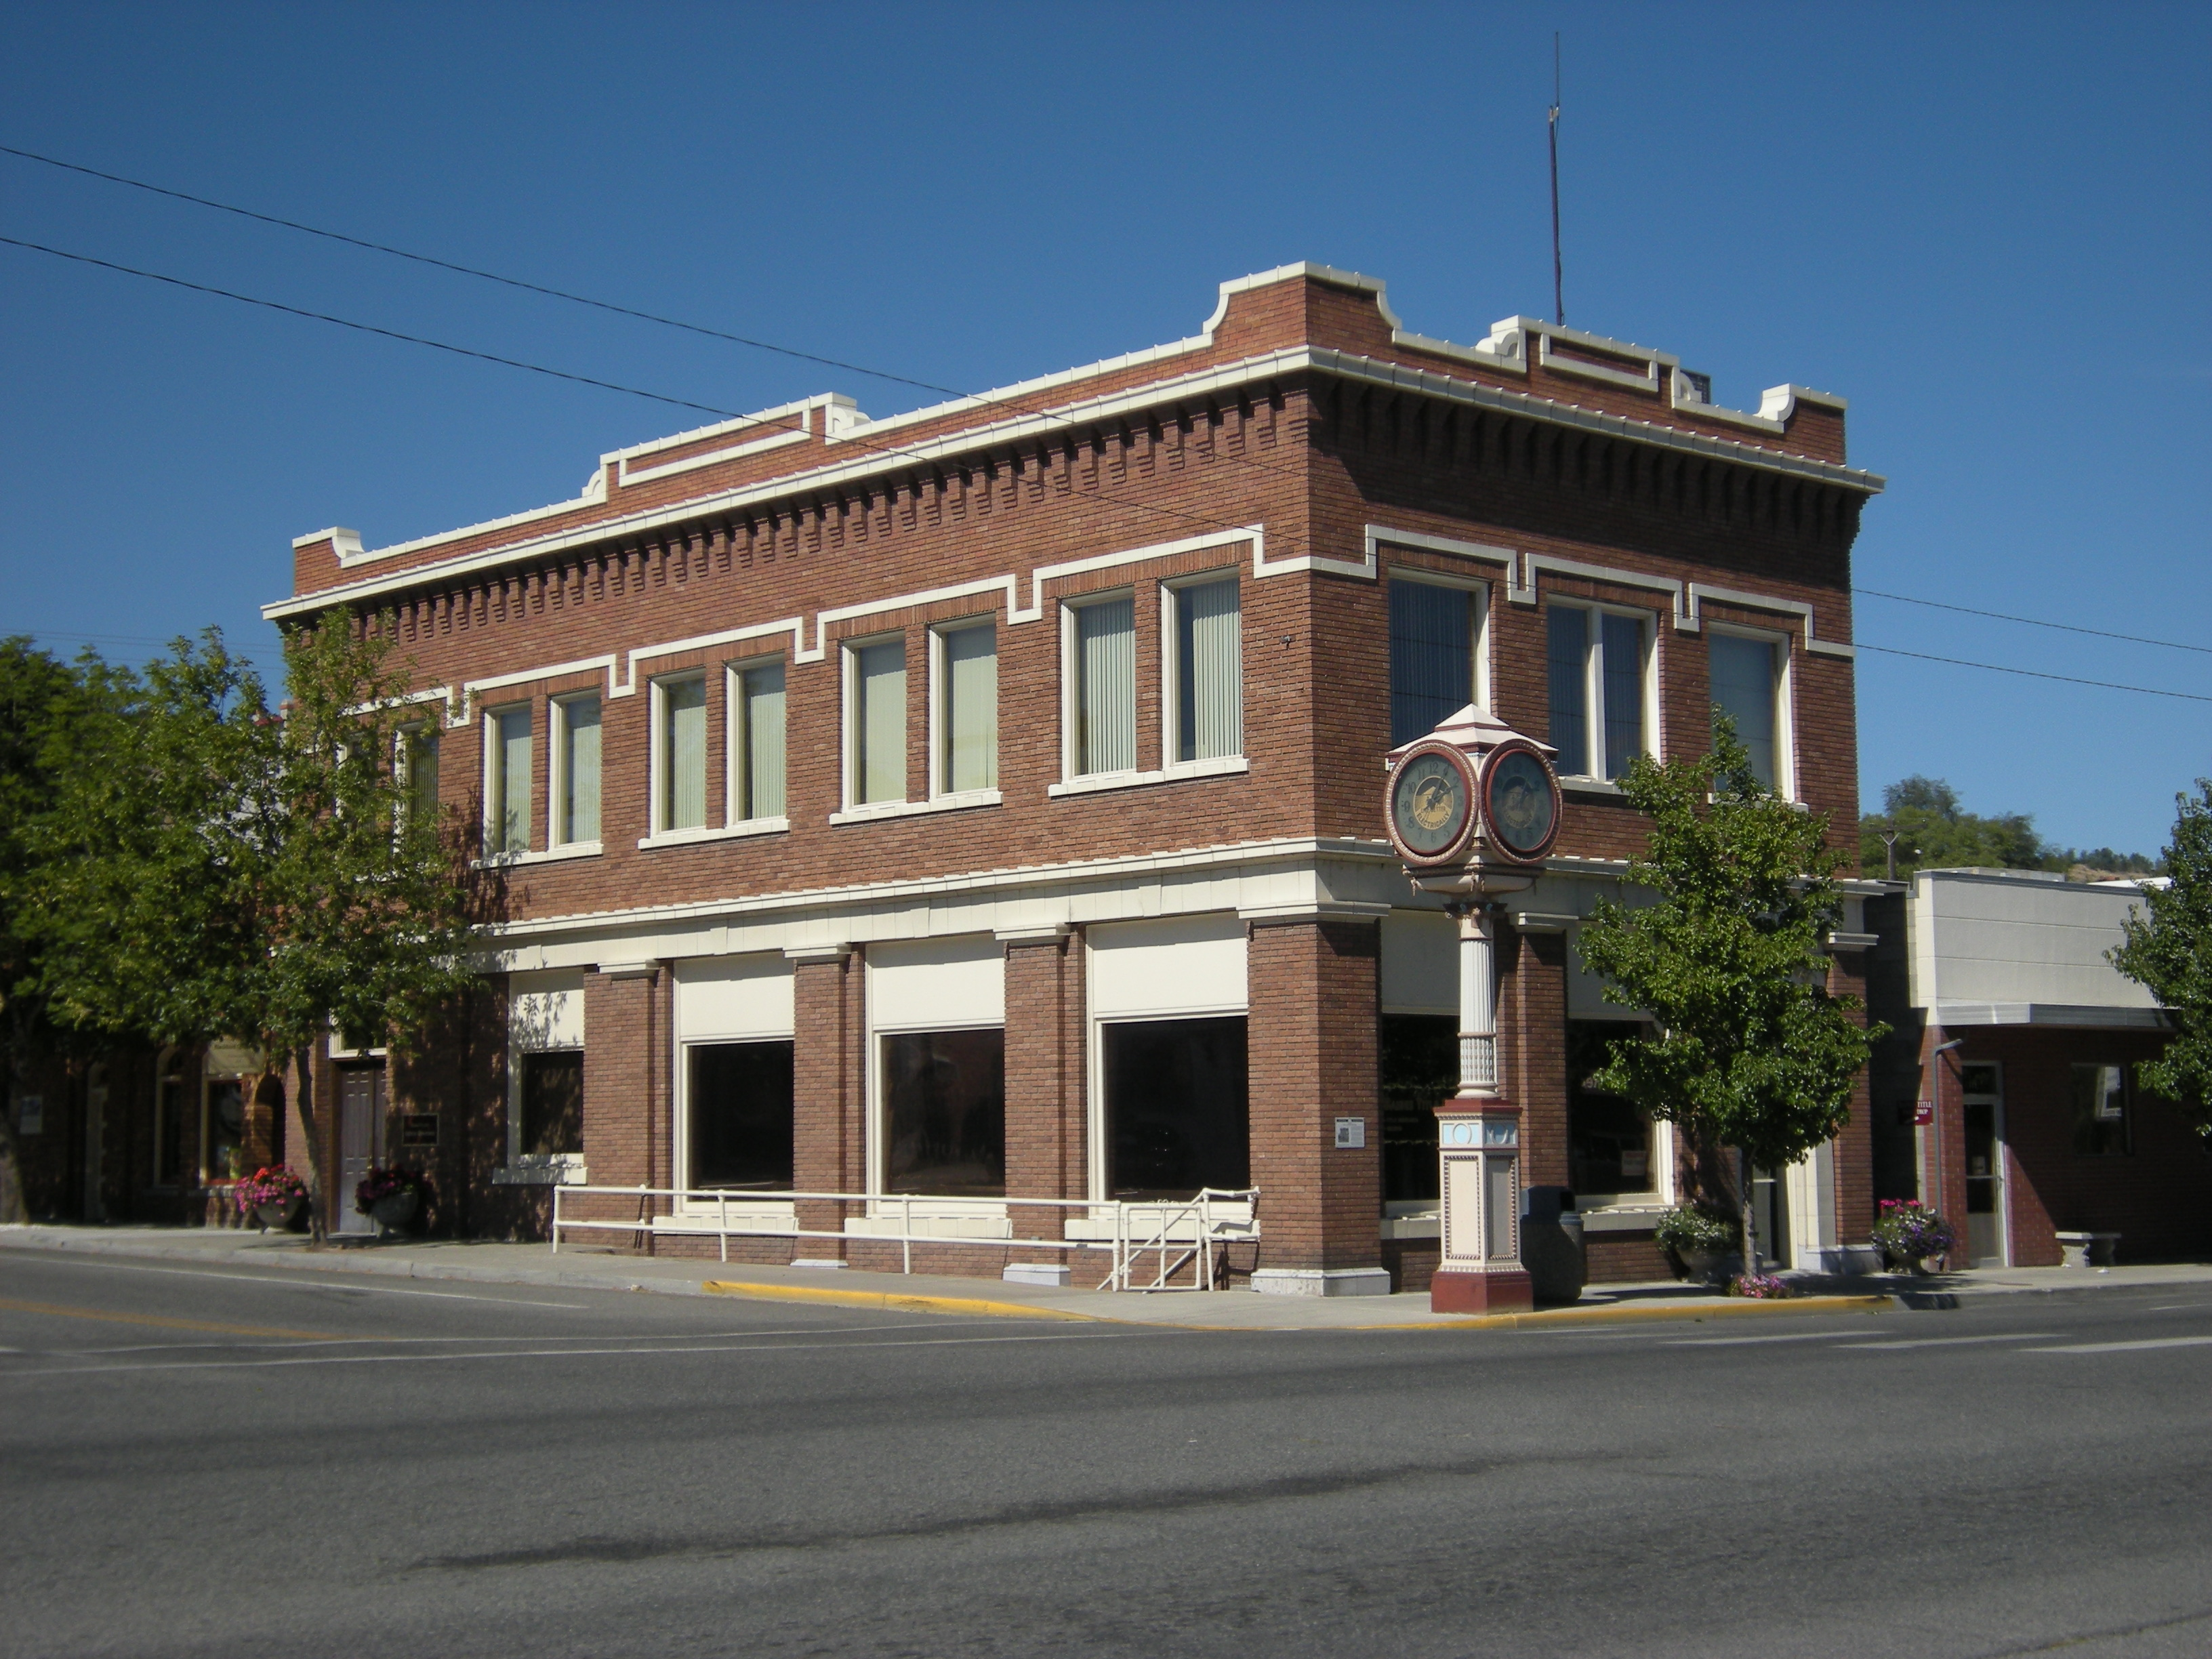 File:Okanogan, WA - Commercial Building.jpg